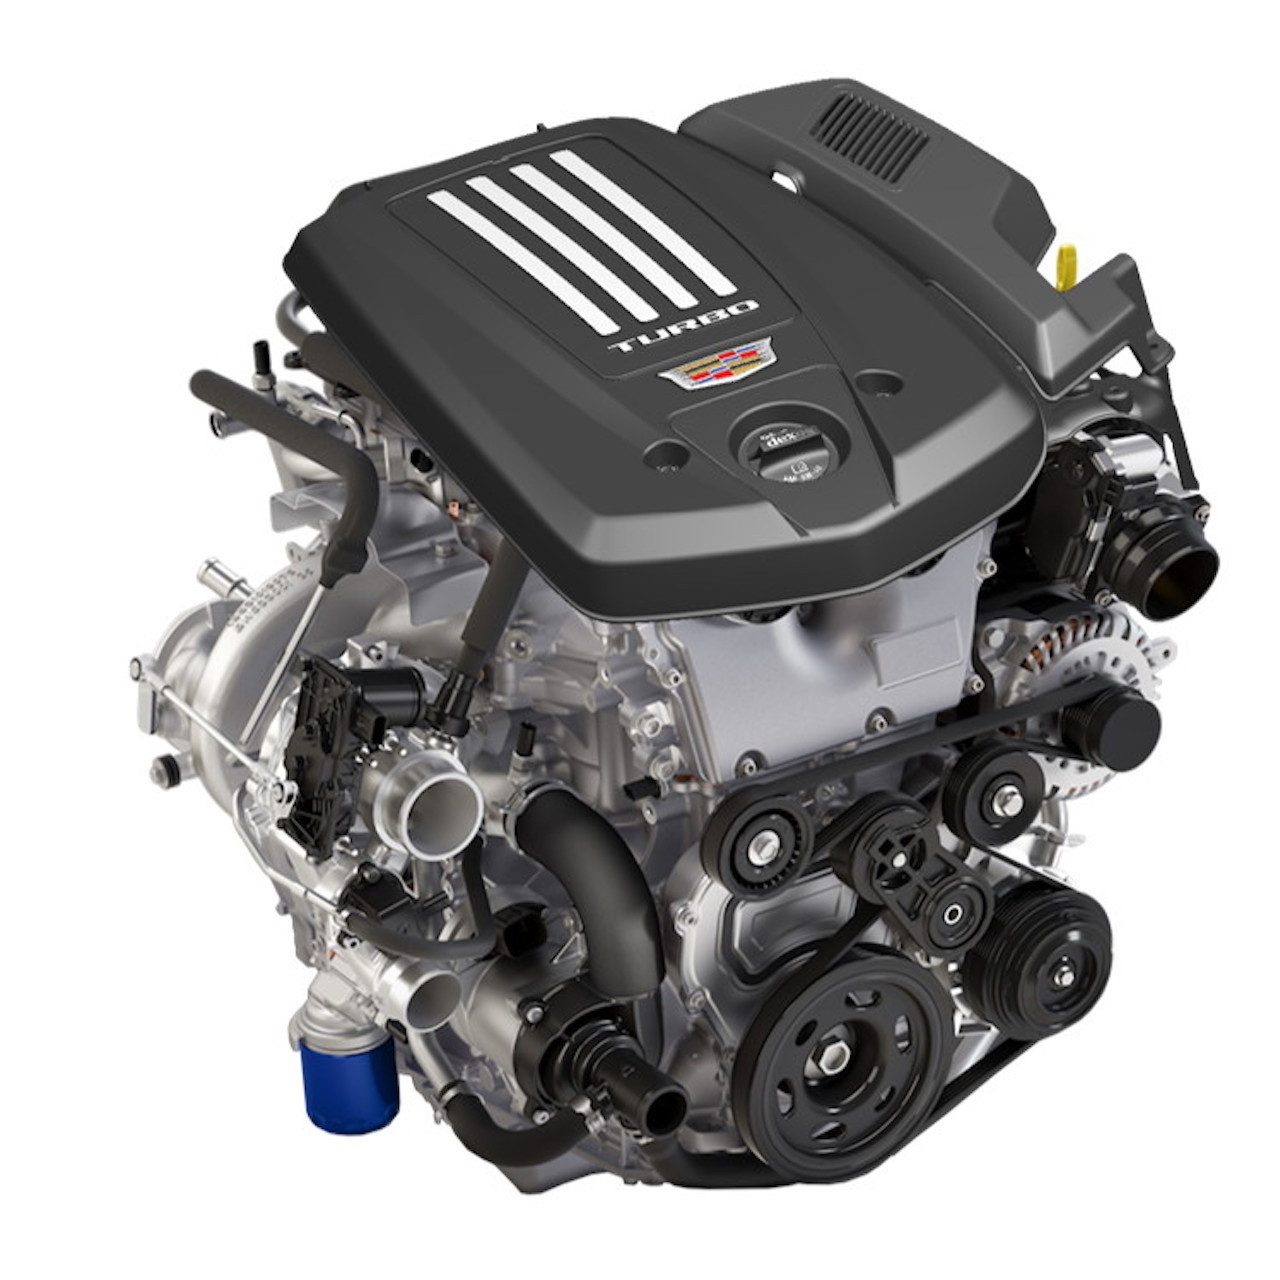 Cadillac now offers its 2.7-litre Dual Volute engine on the 2020 CT4-V sedan and optional on the CT4.